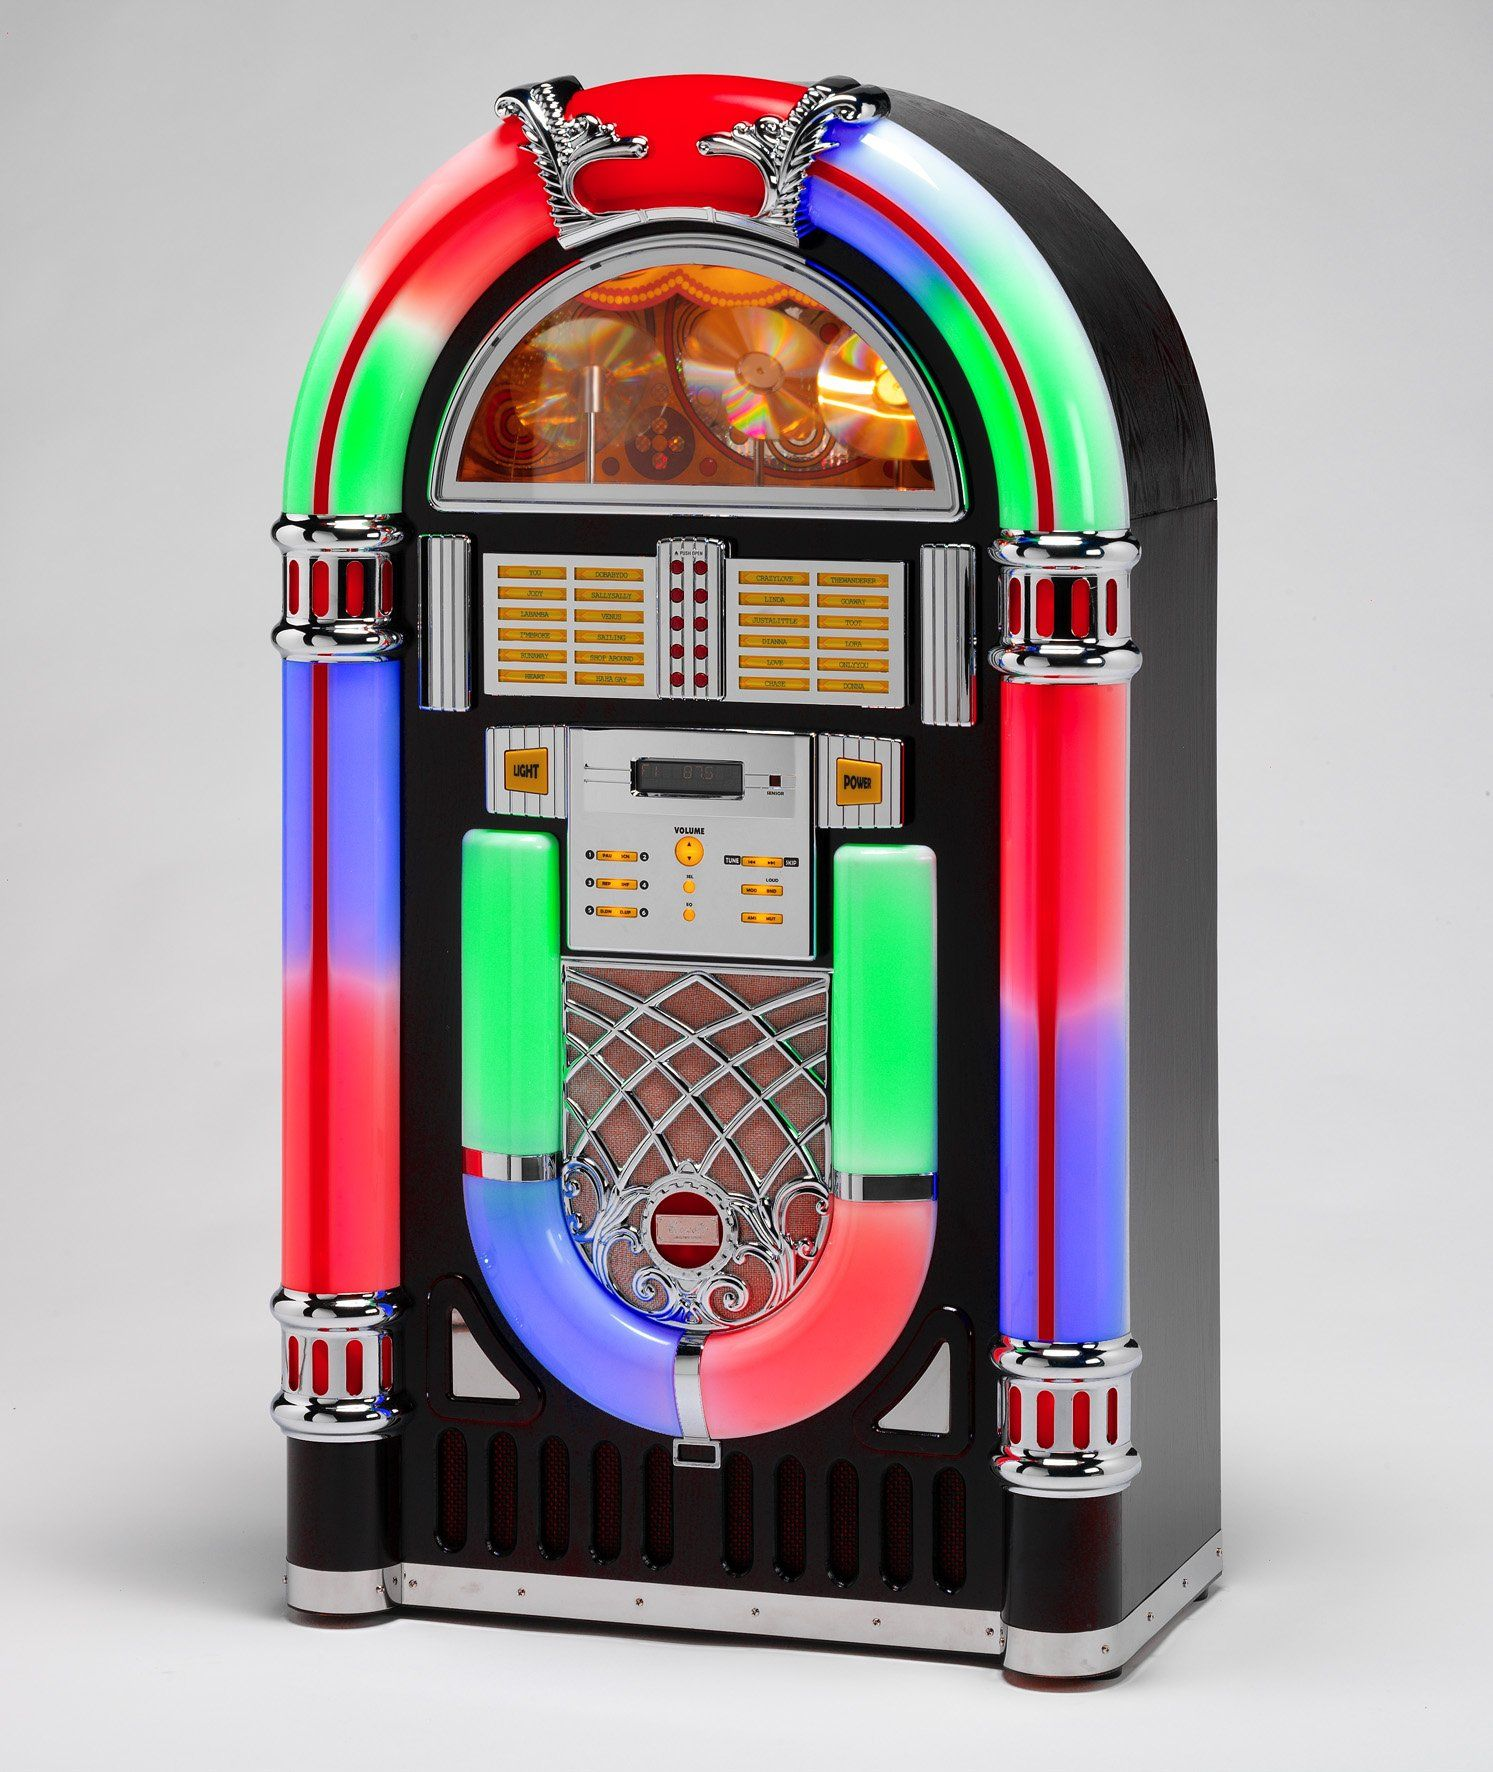 jukeboxes | Jukeboxes - Mini Jukeboxes - our selection of small